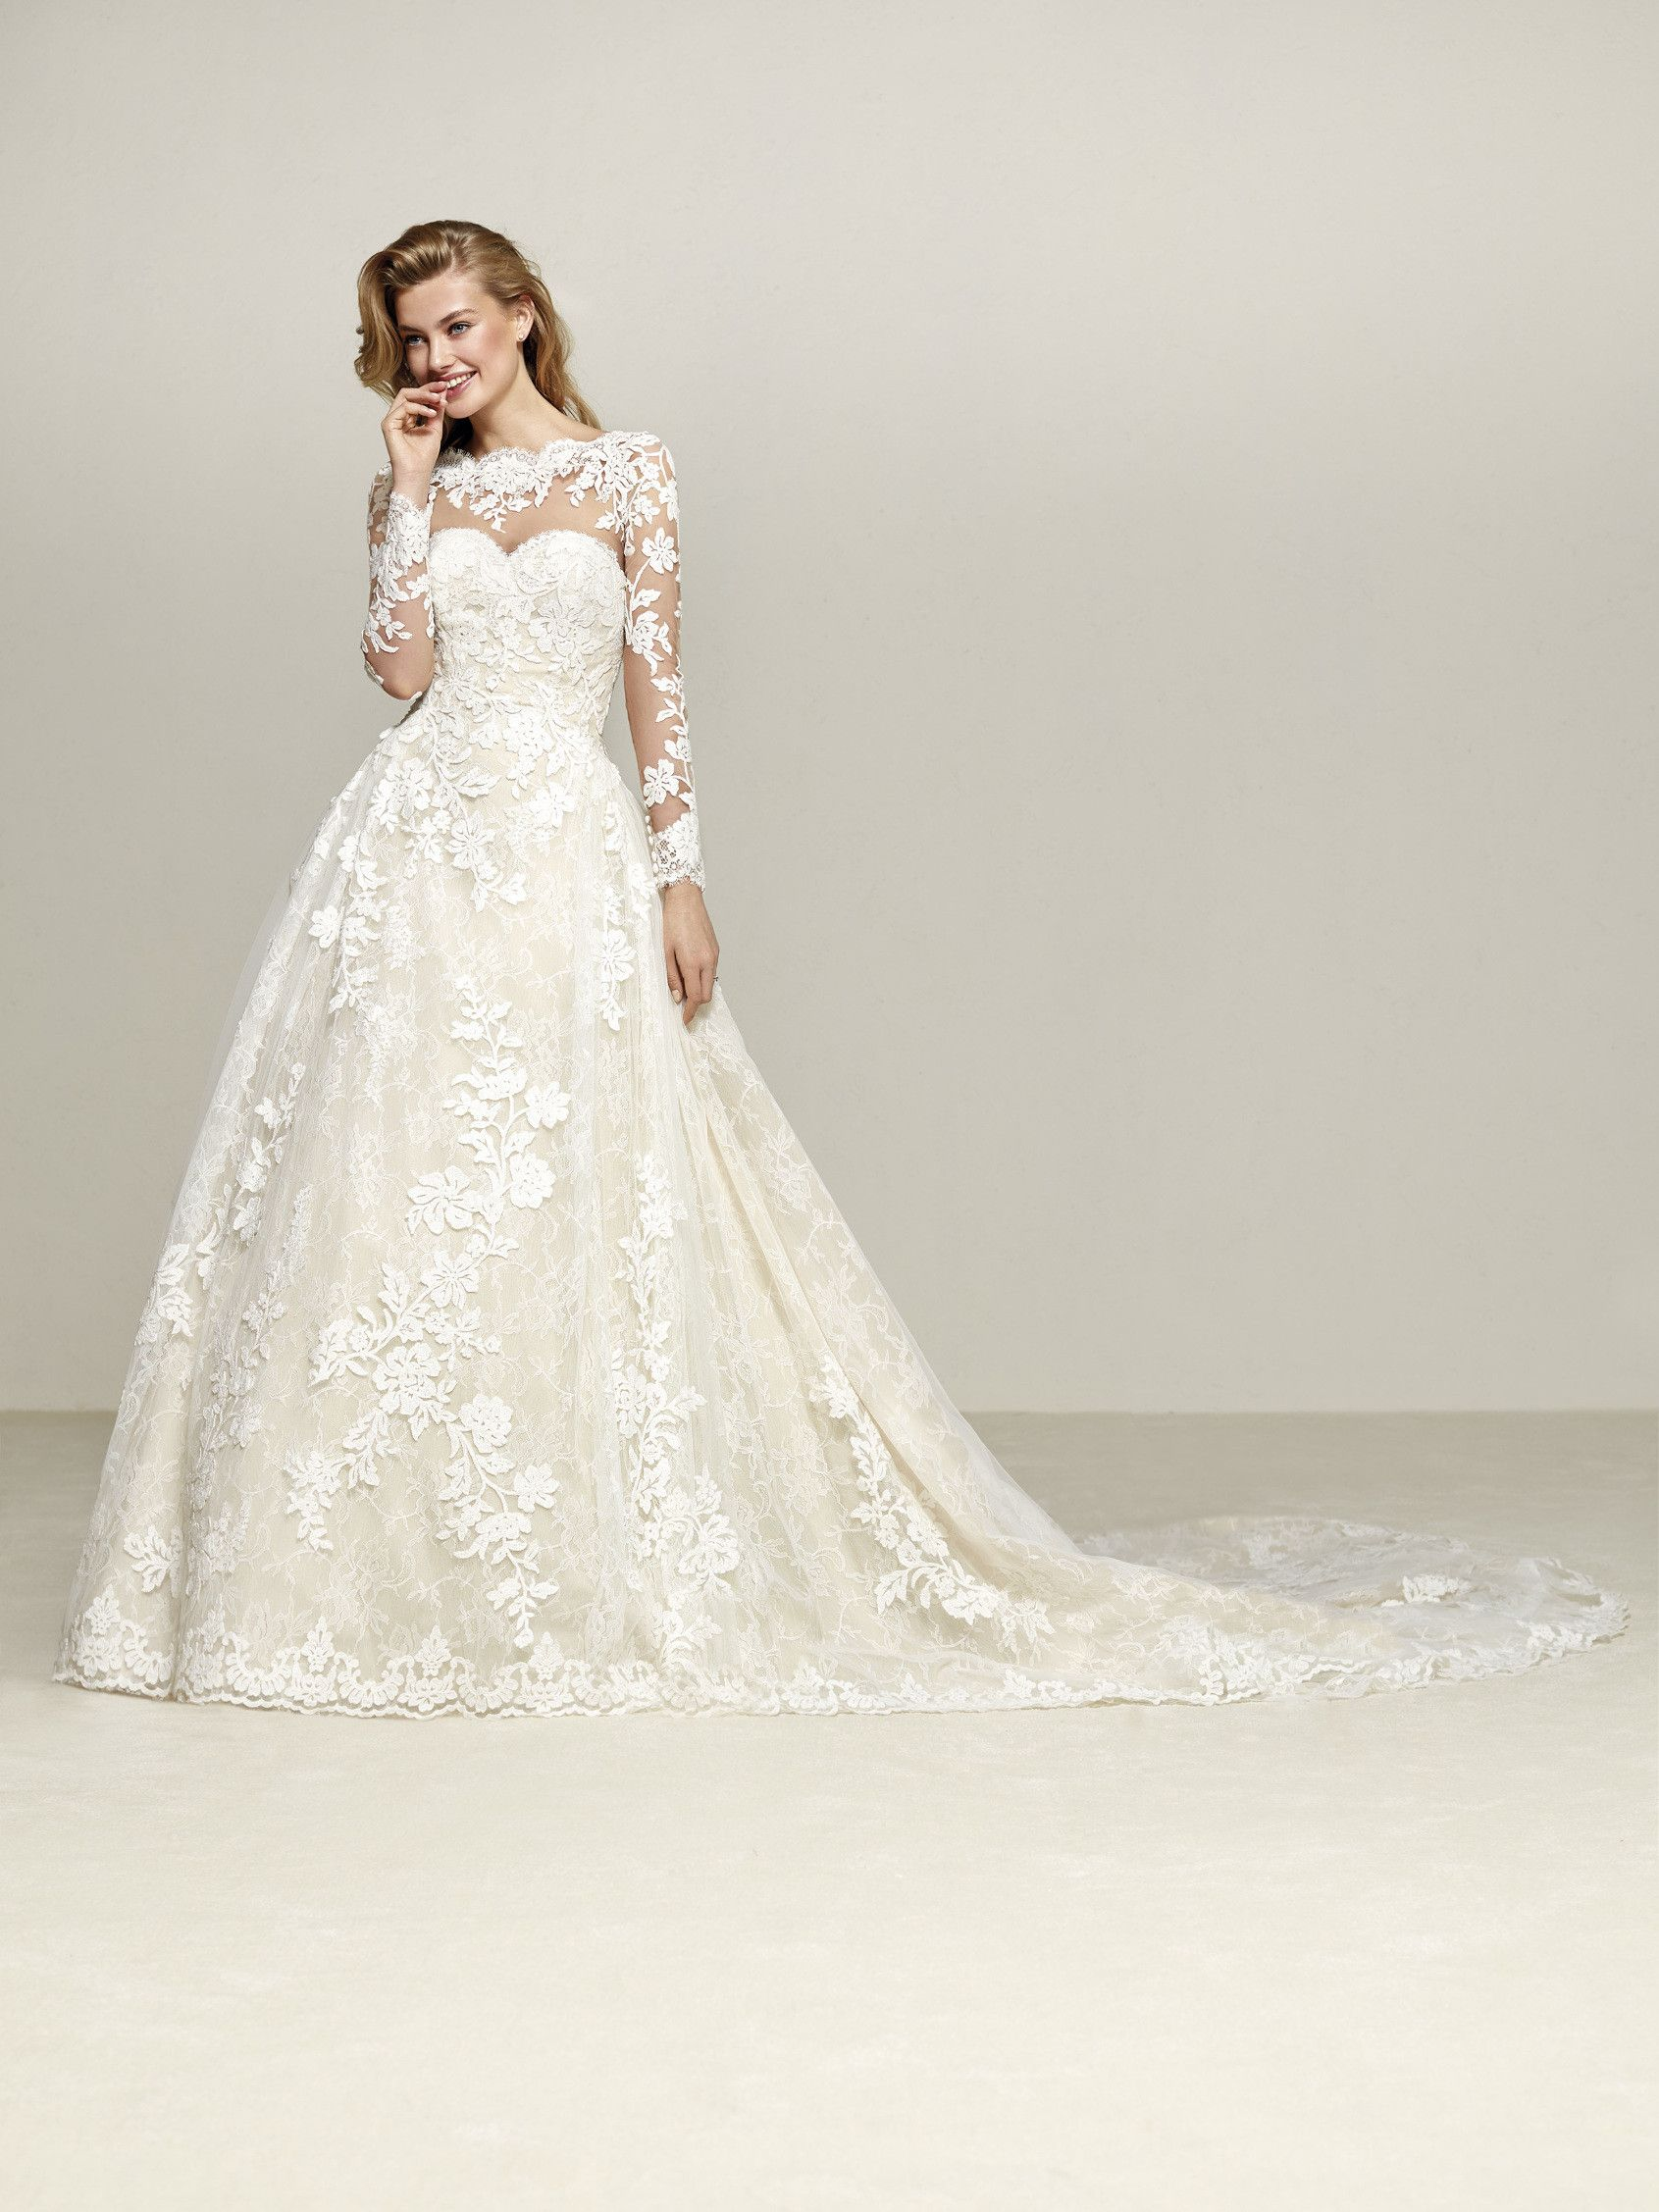 Drumsa is a magical wedding dress with long sleeves